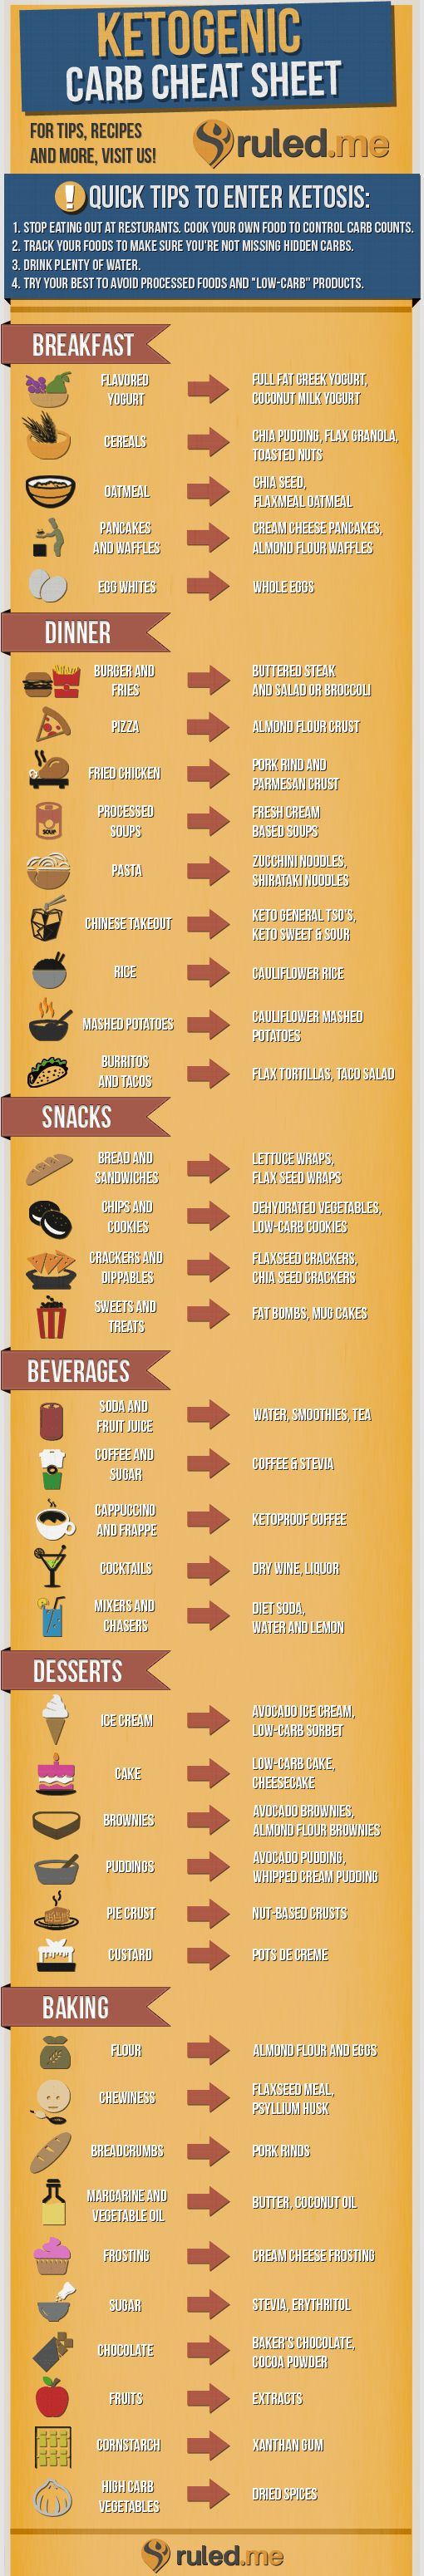 #Lowcarb Cheat Sheet to help everyone that's new to a Ketogenic Lifestyle! Shared via http://www.ruled.me/